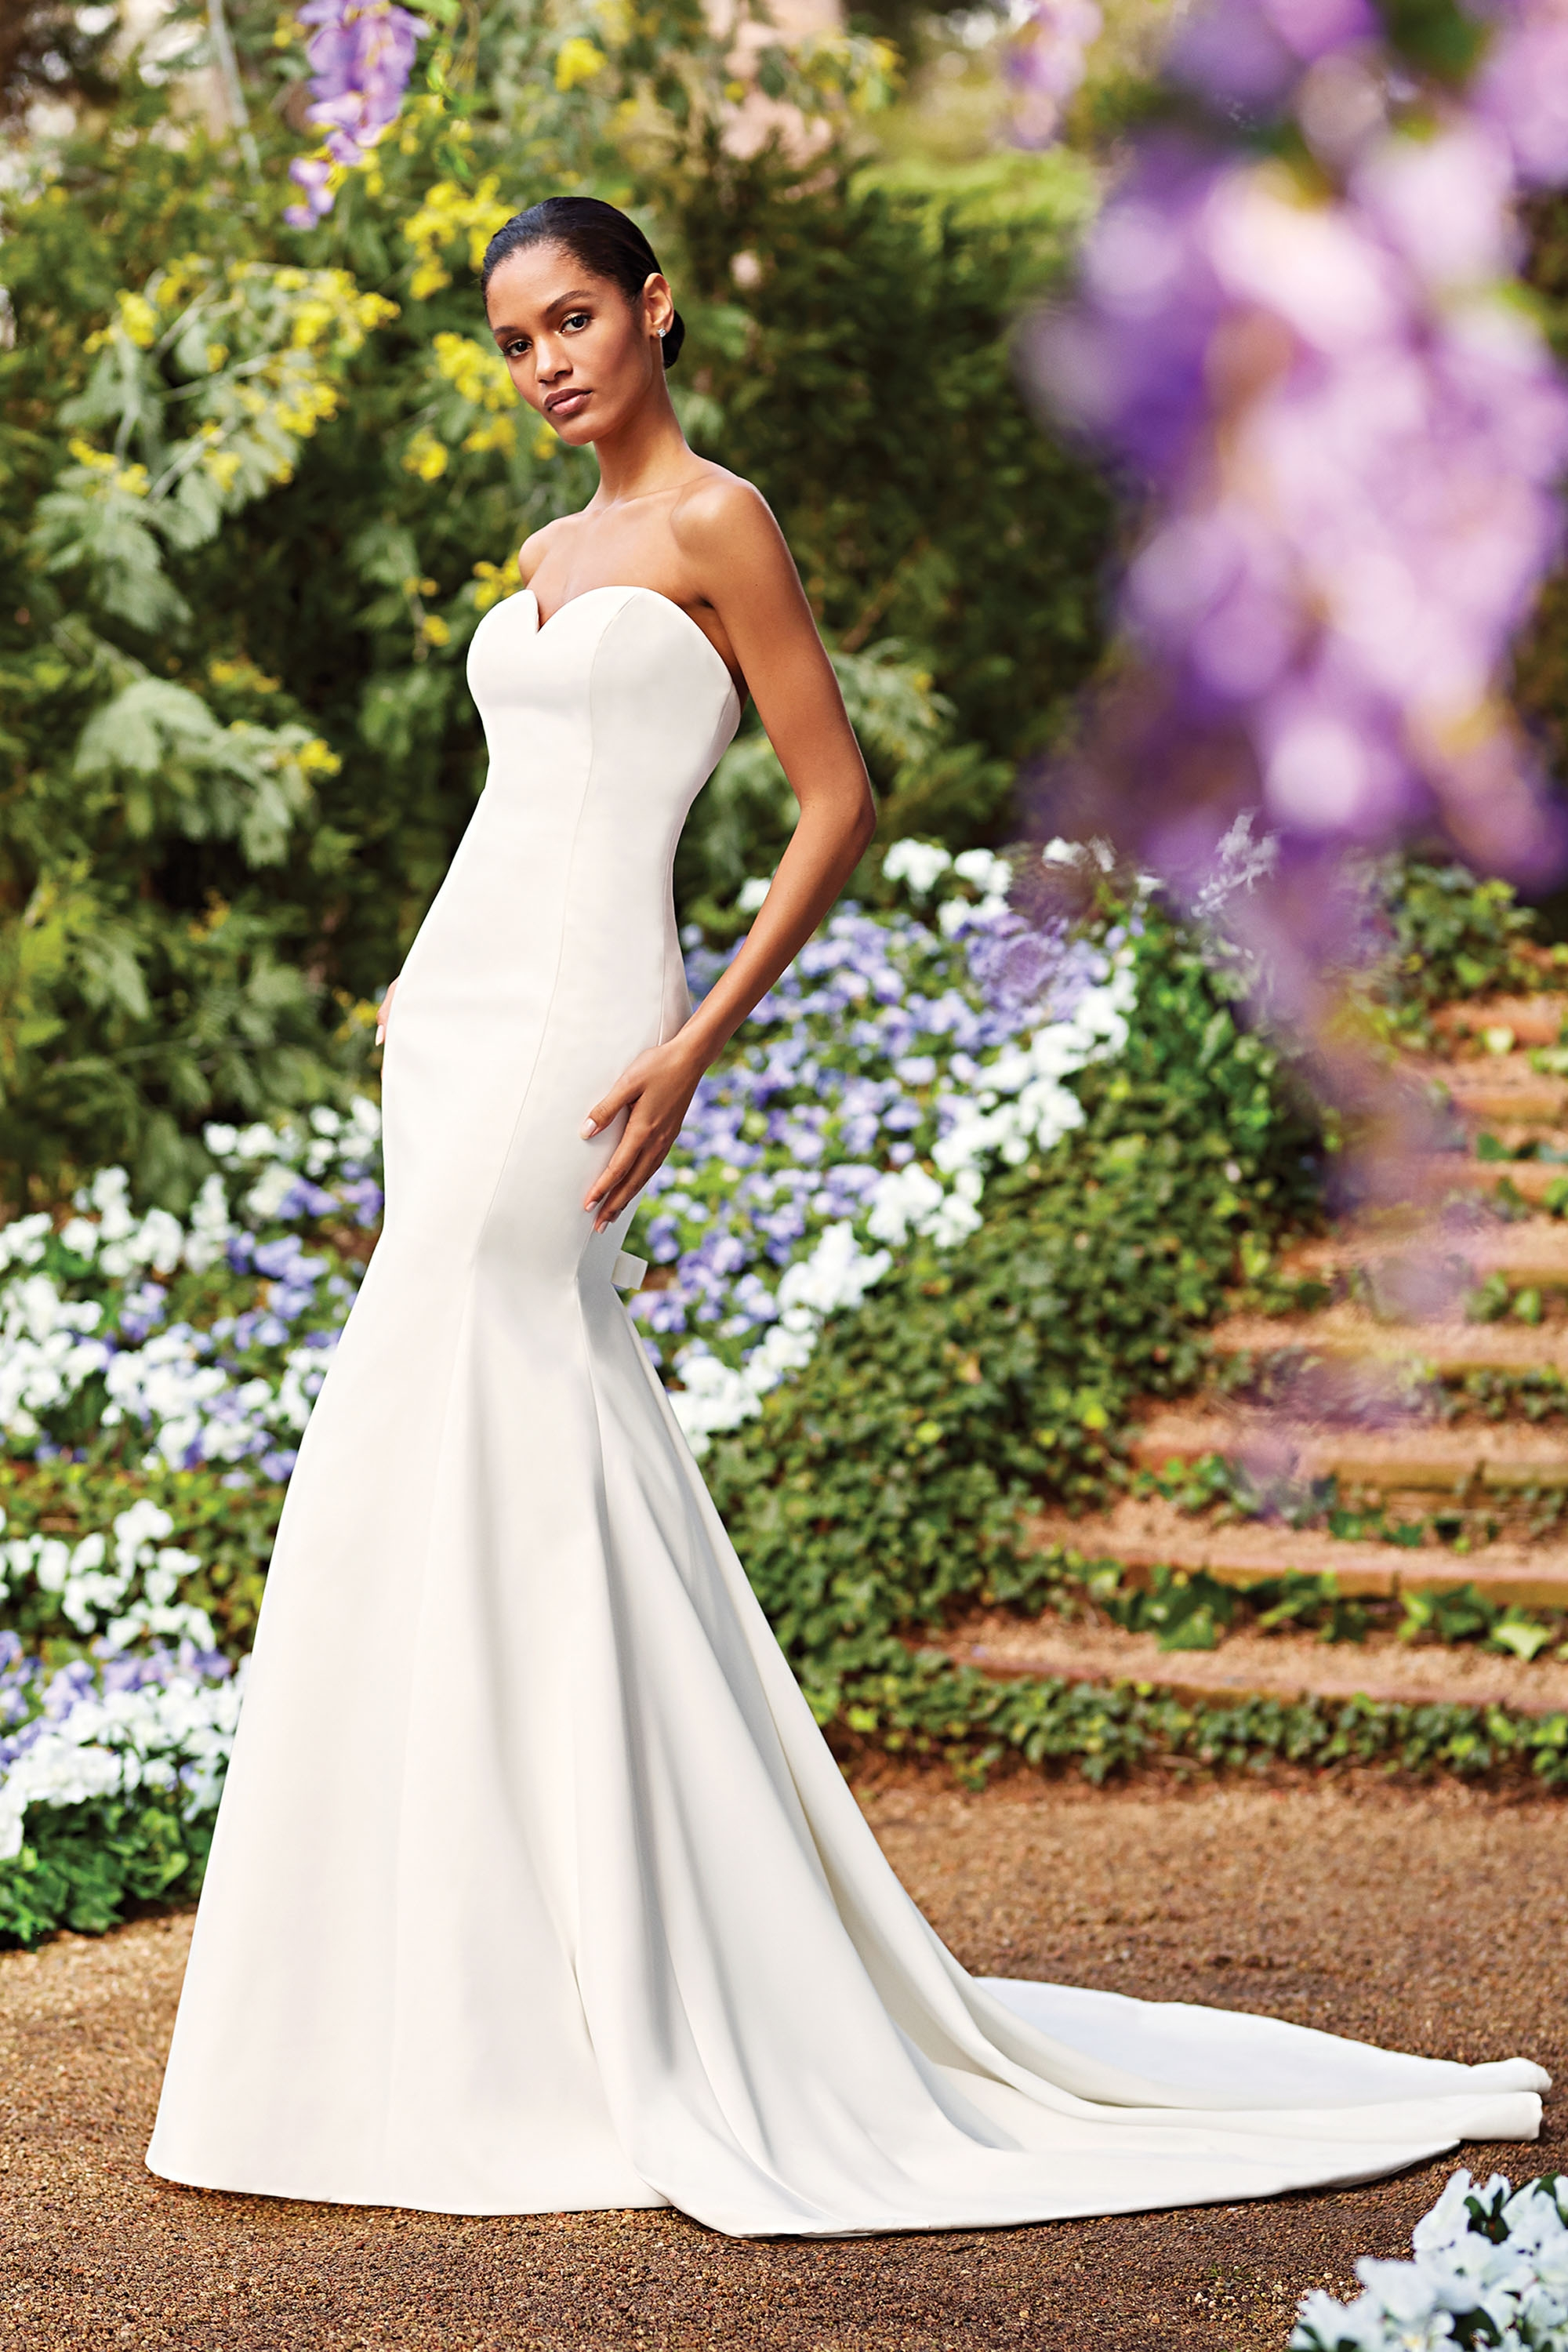 44156 - Classic sweetheart lavish satin fit and flare gown, features princess seams and on trend bow